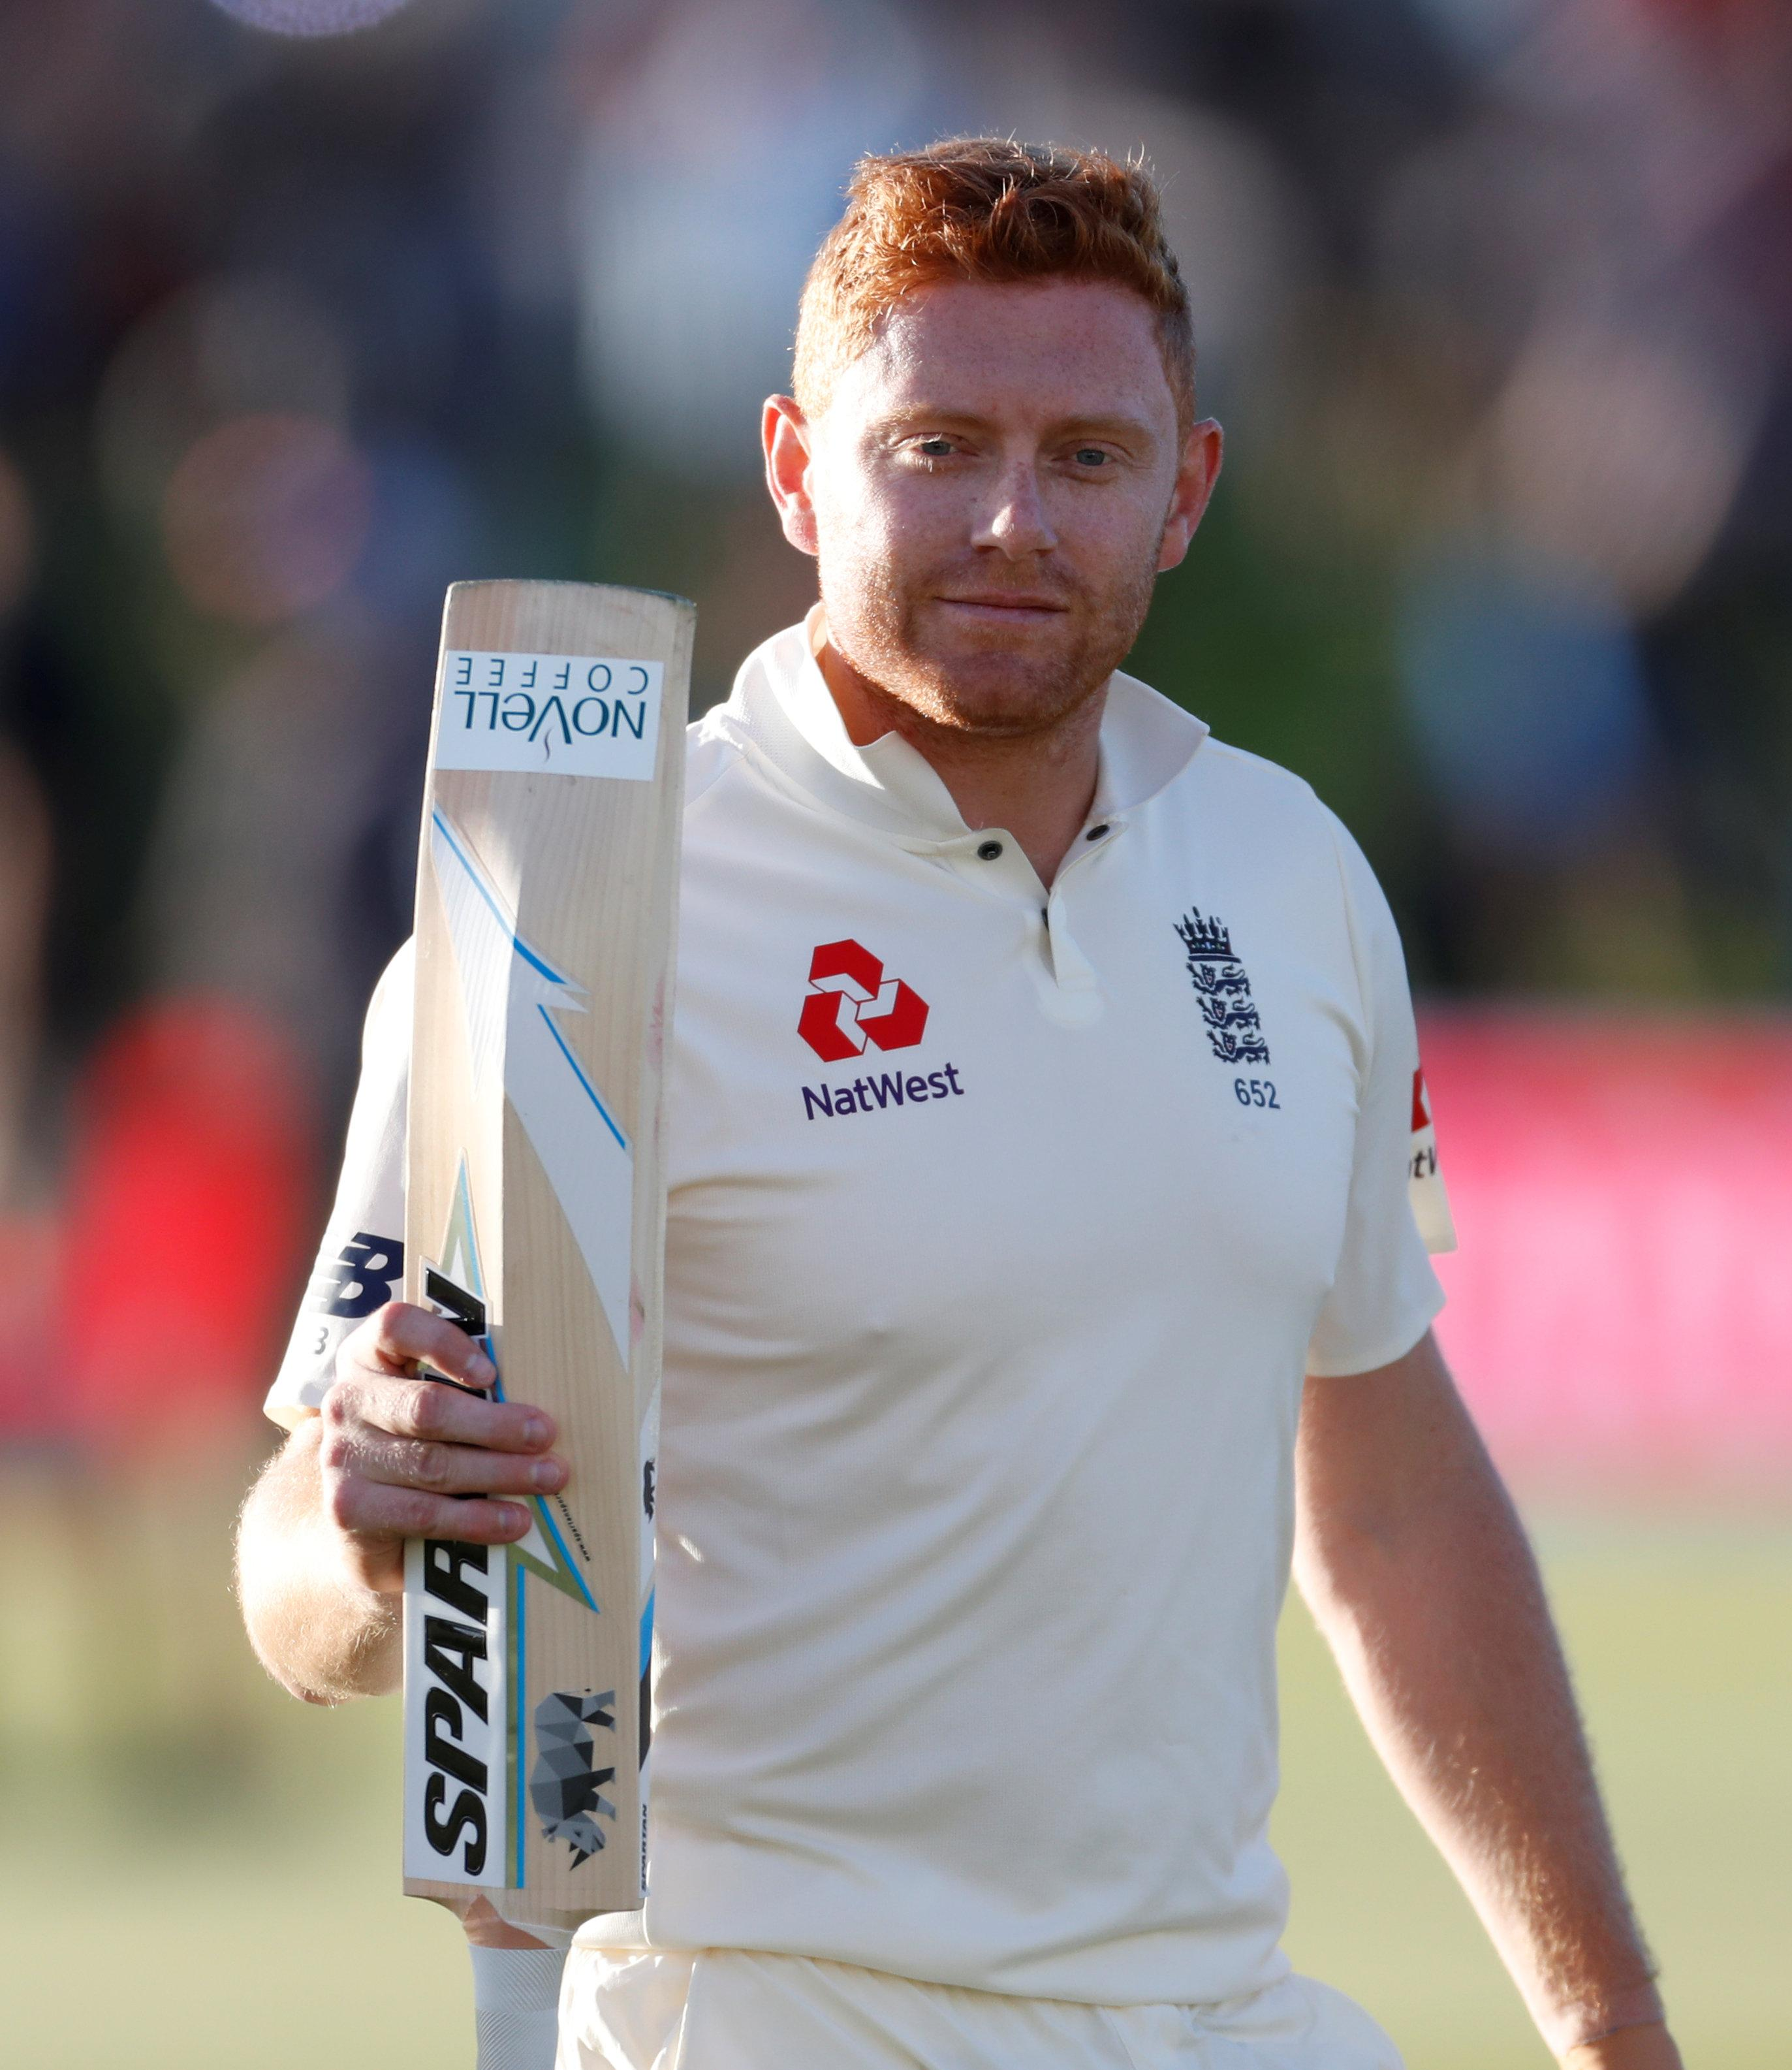 Jonny Bairstow scored two Test centuries for England during the winter